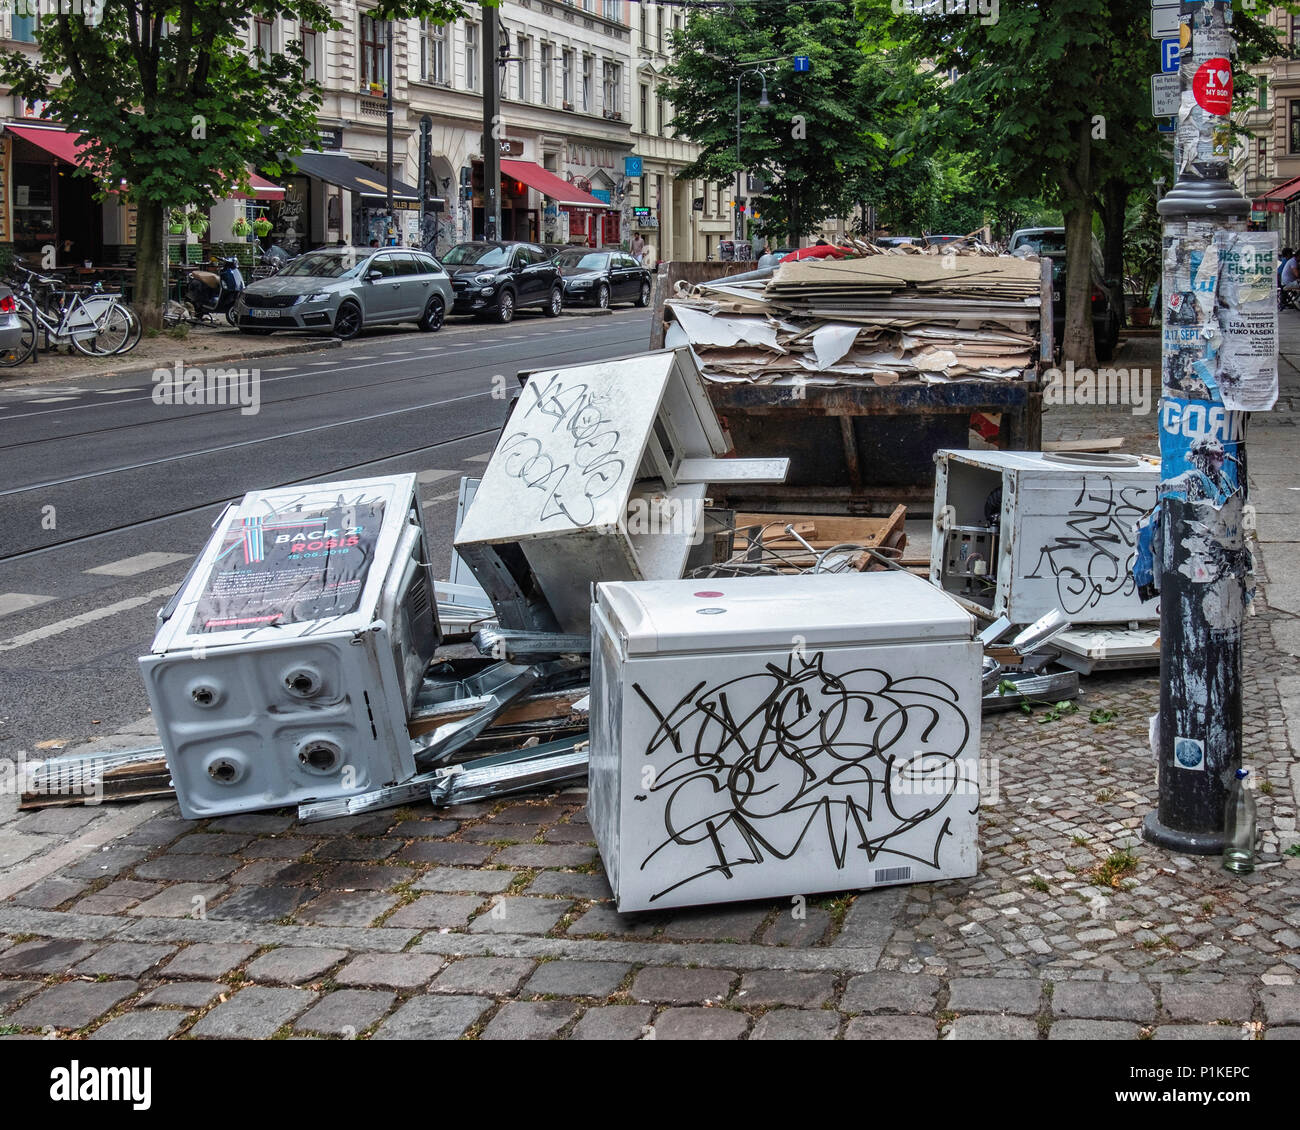 Berlin Prenzlauer Berg.Kastanienallee. Old kitchen white goods dumped on an urban pavement next to a skip - Stock Image